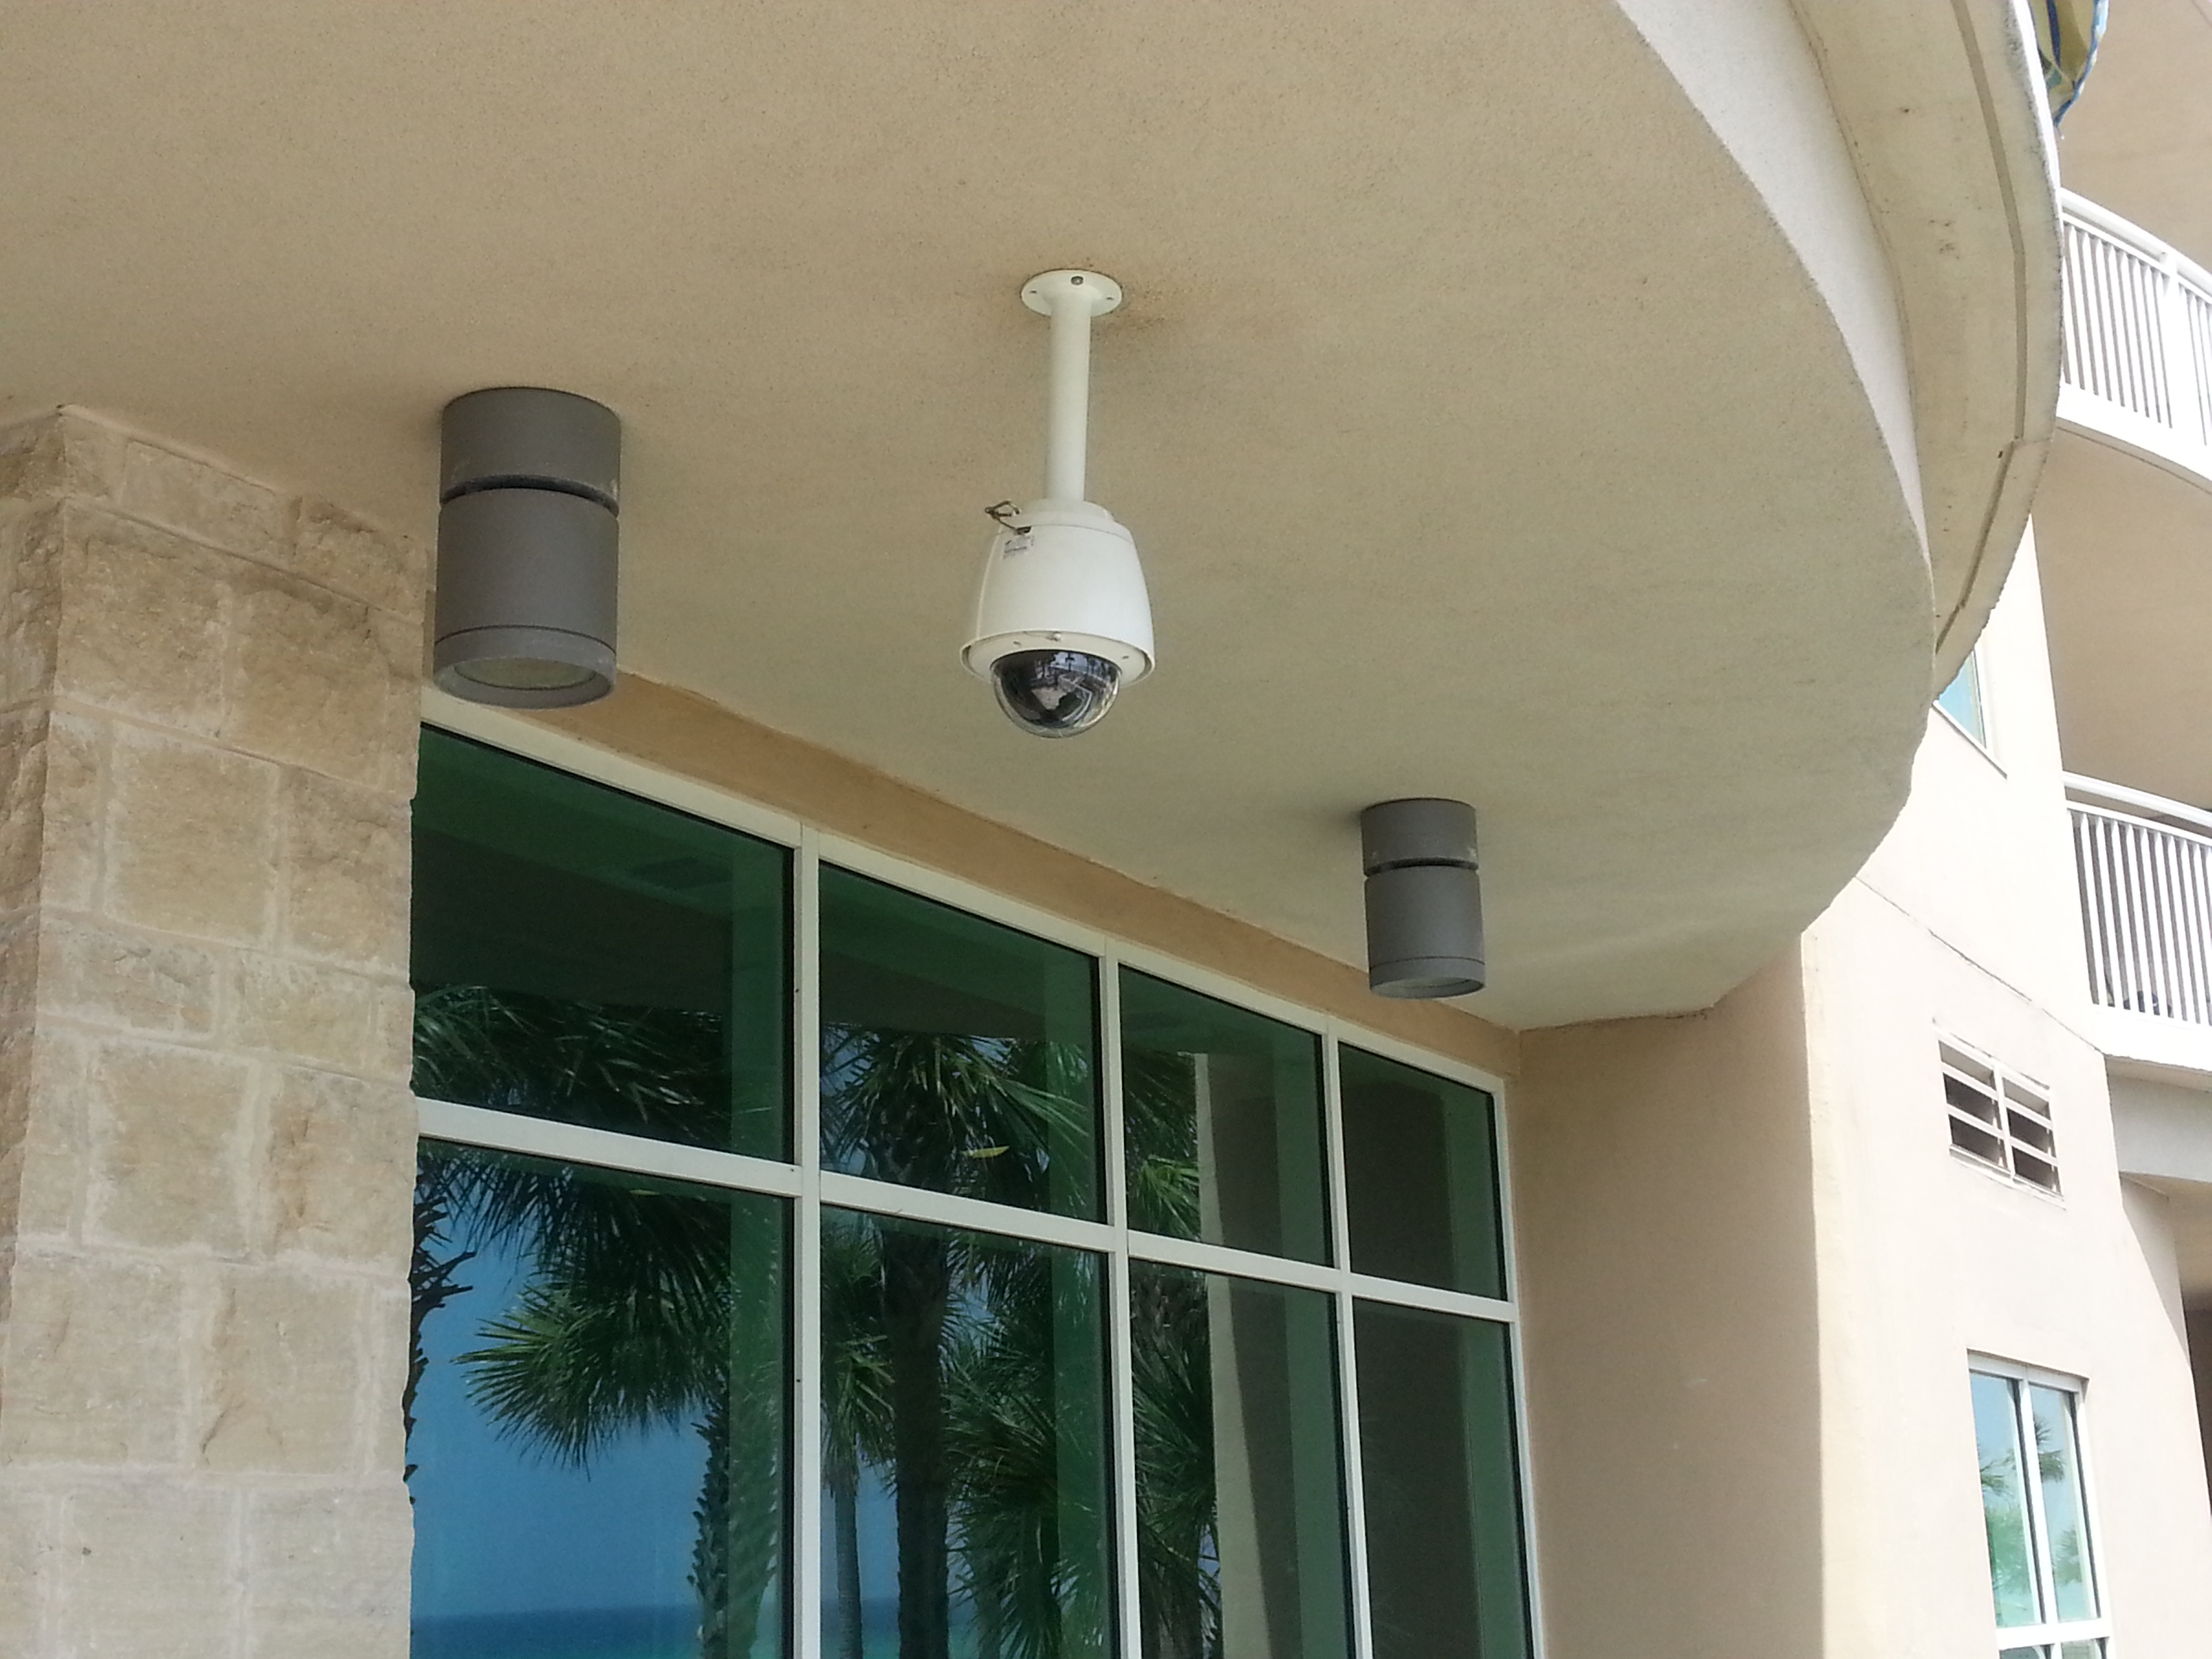 panama city beach ptz security camera